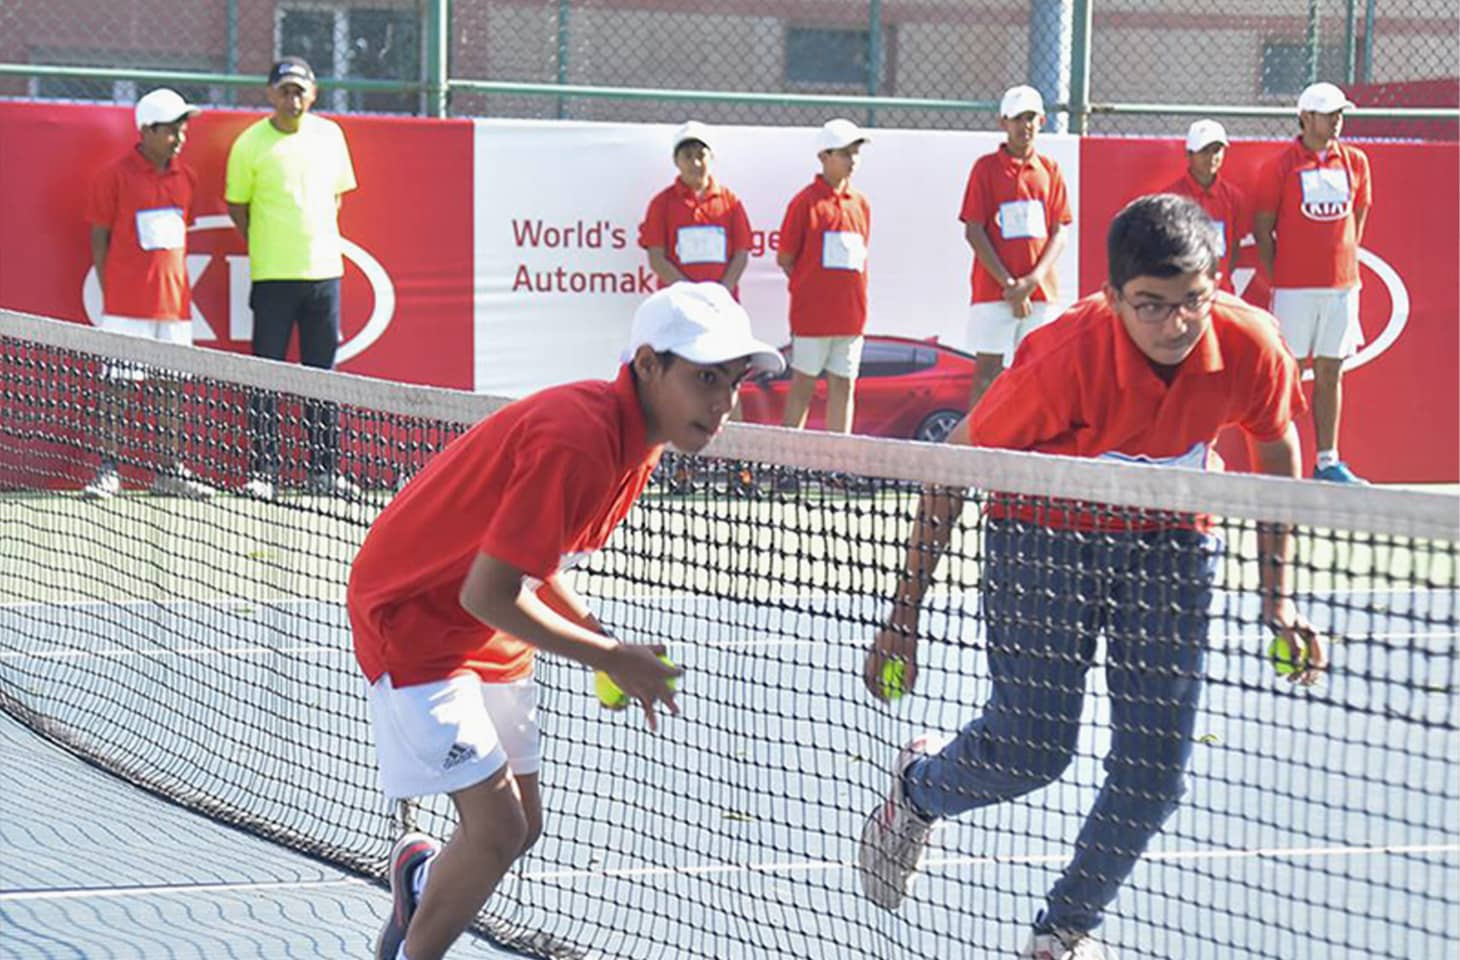 kia india ballkids at australian open game on